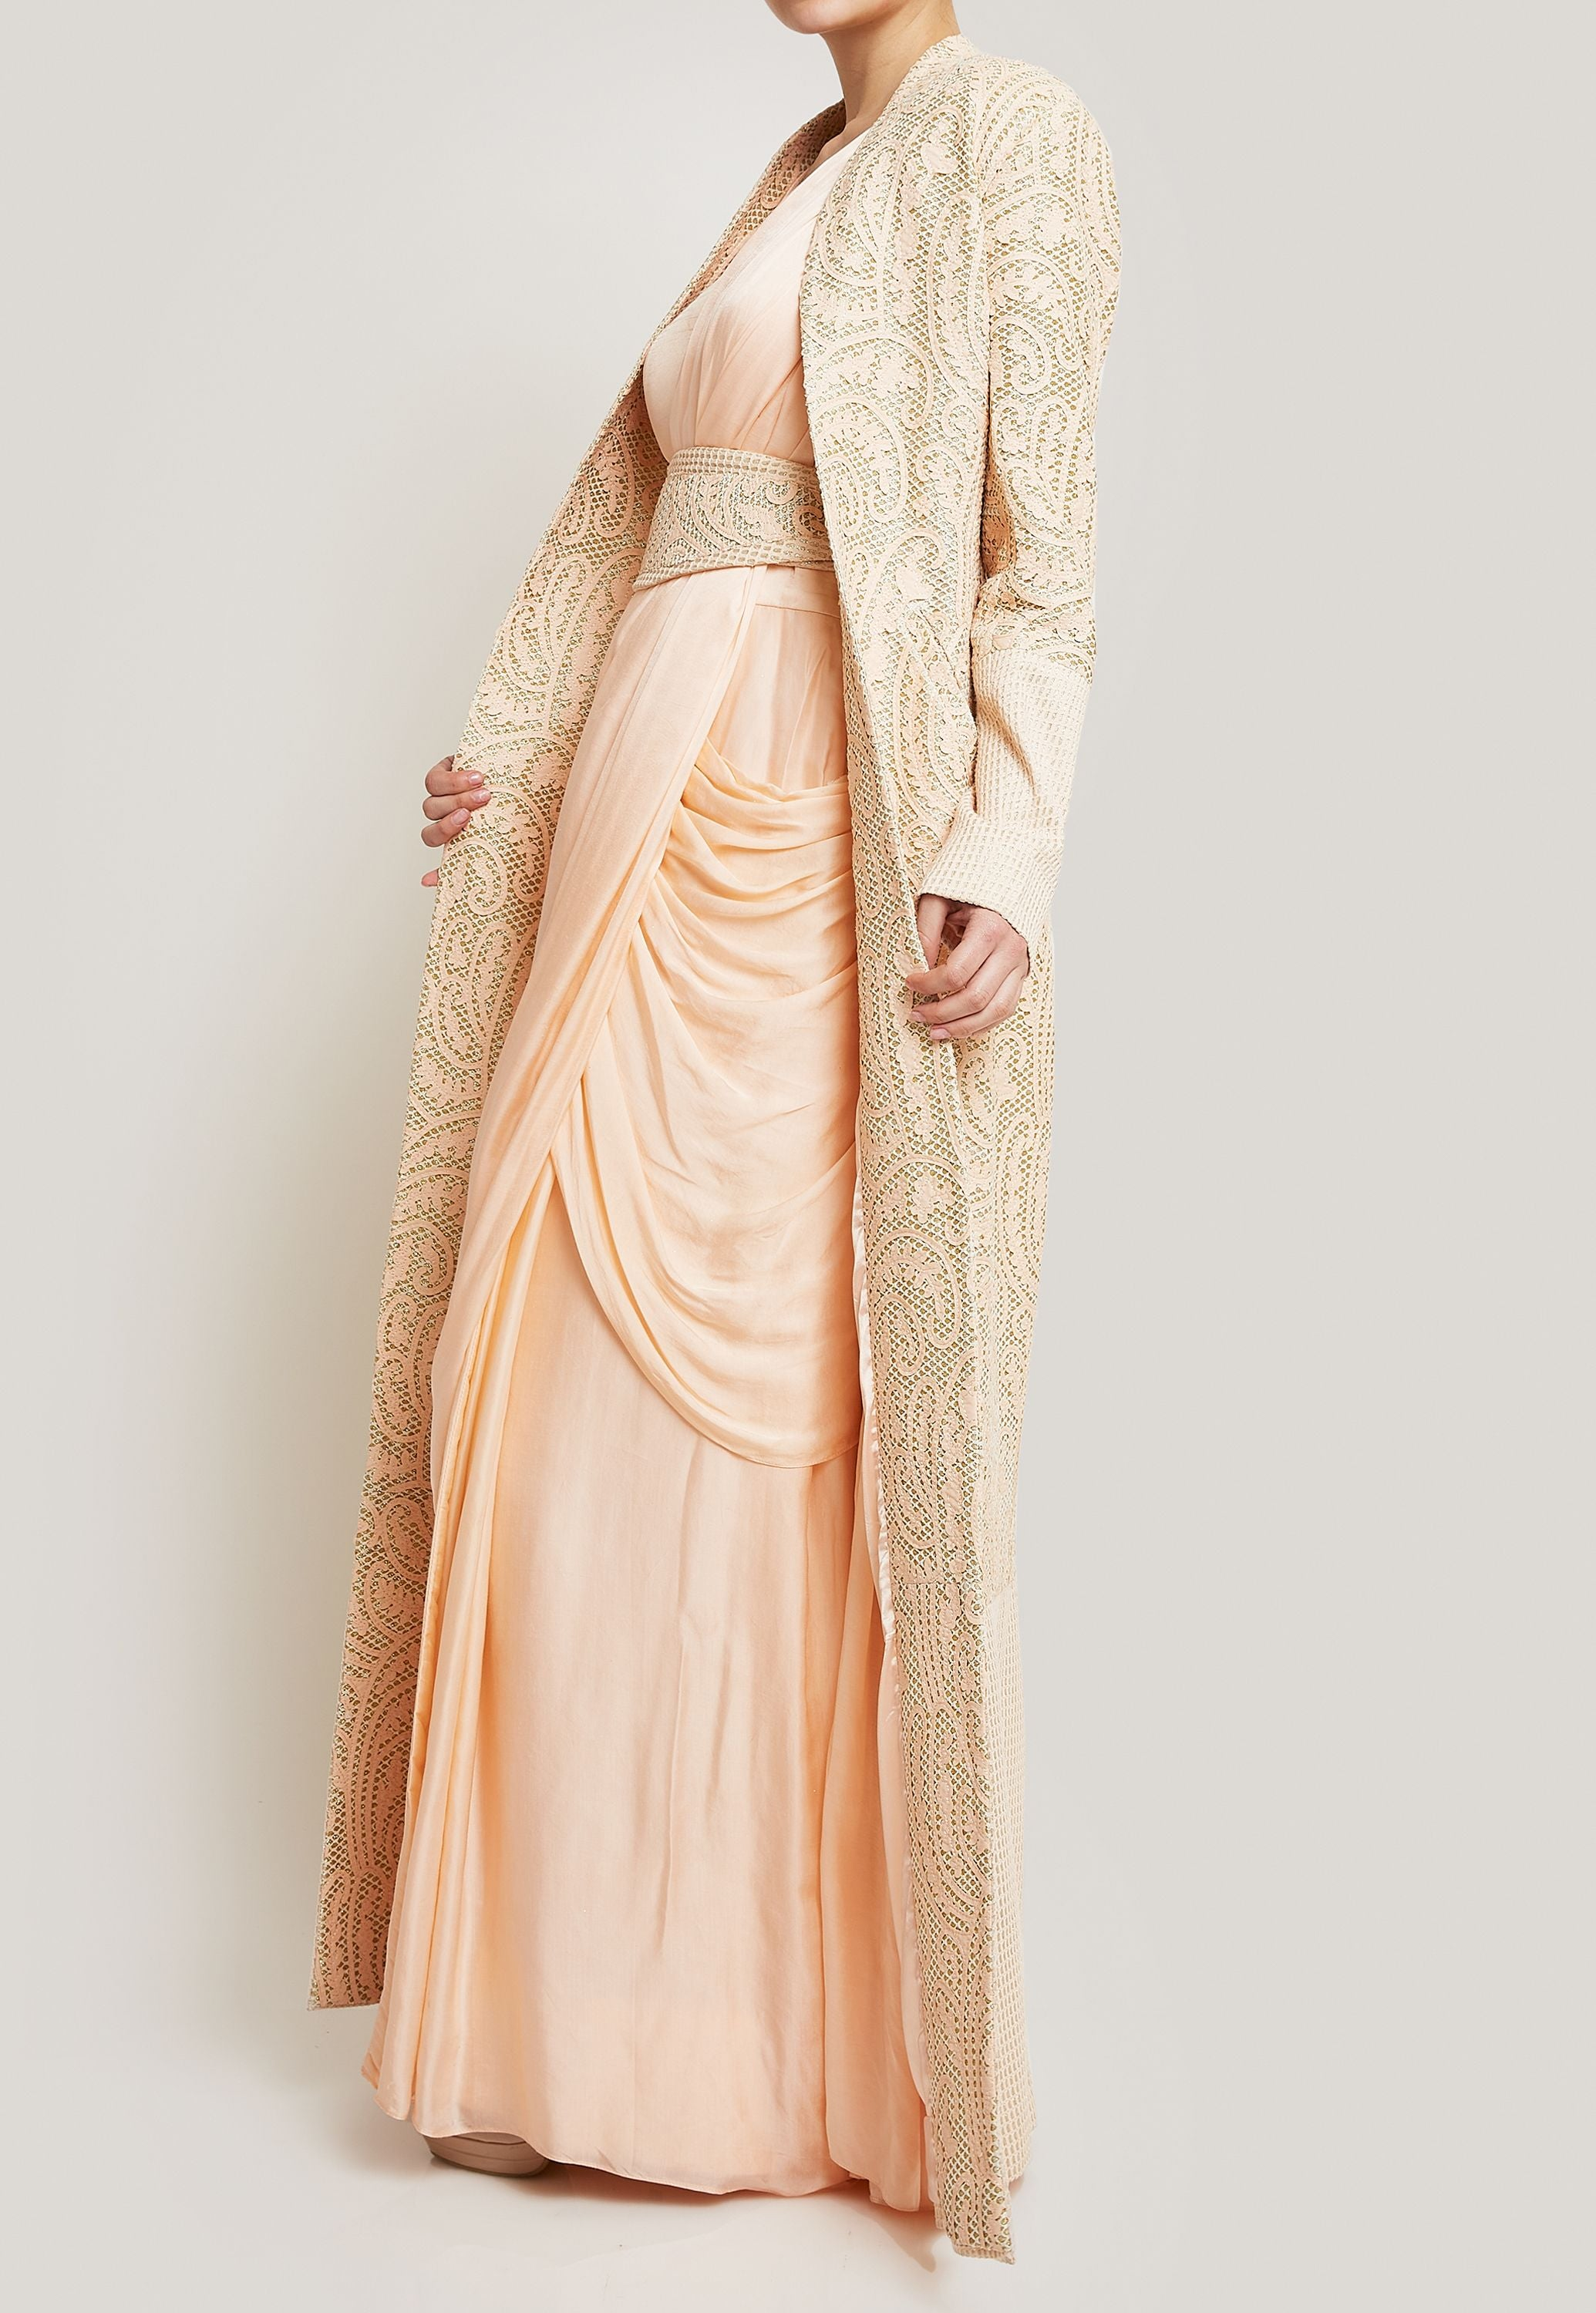 PEACH SAREE GOWN WITH A JACKET AND BELT